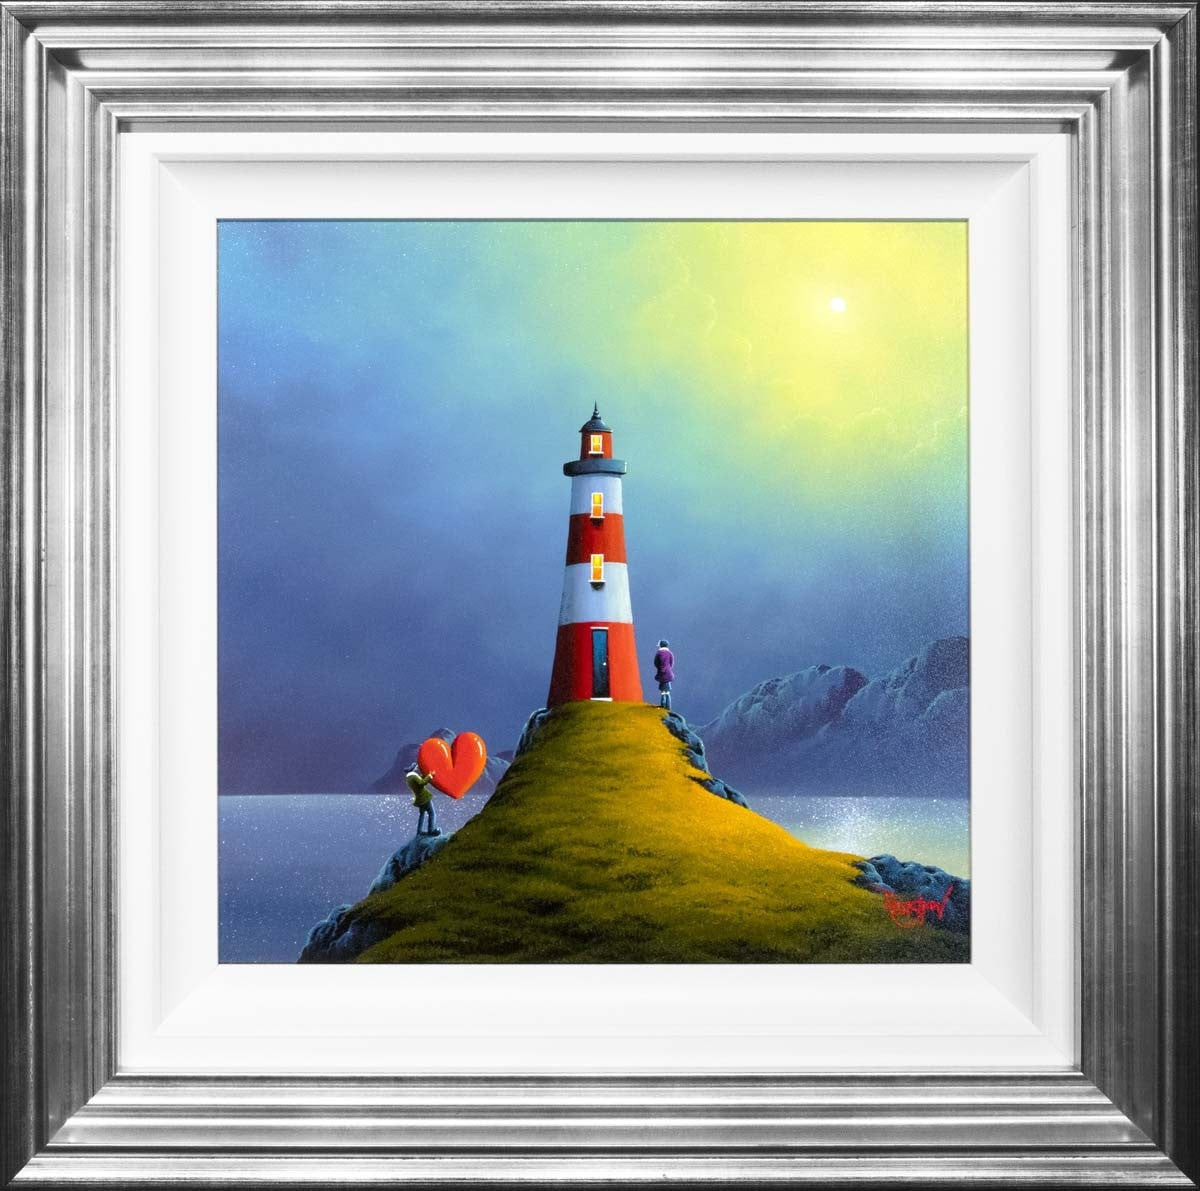 Lodestar - SOLD David Renshaw